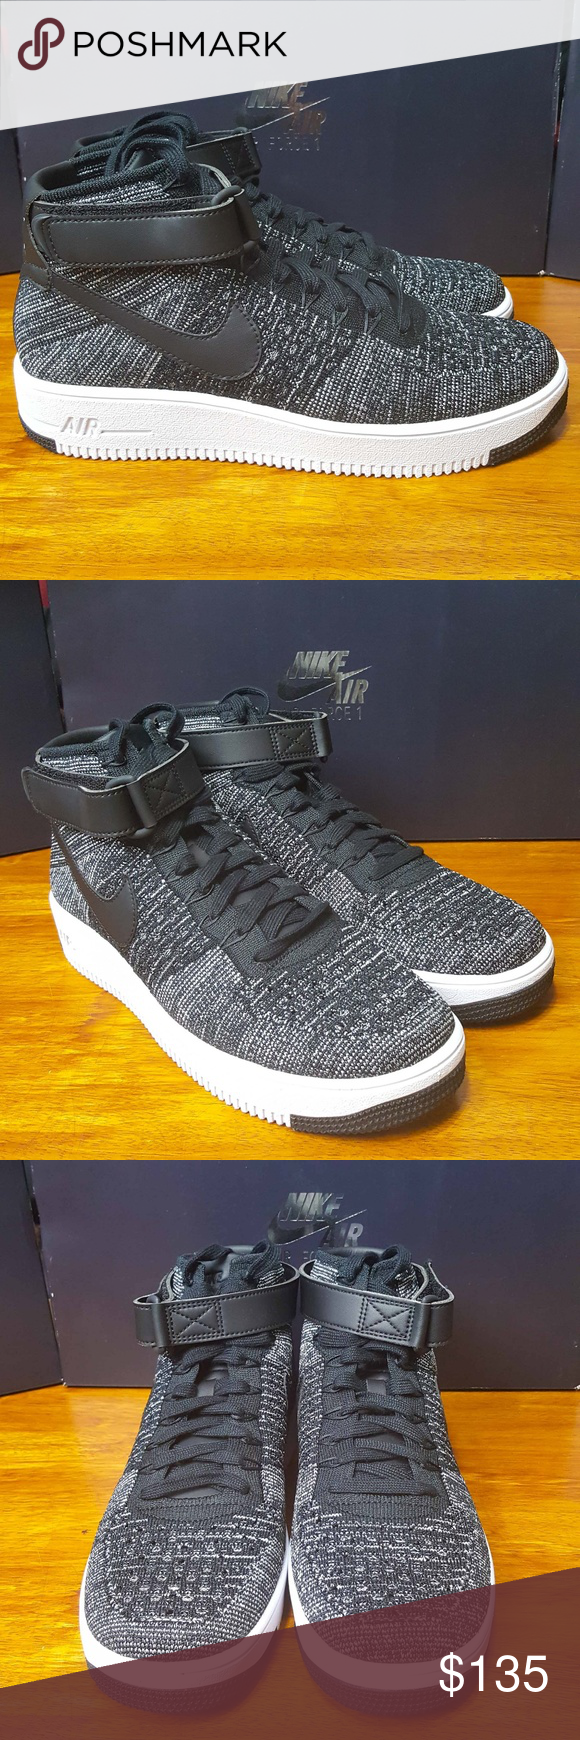 316bc1c86604 Nike Air Force 1 AF1 Mid Oreo 817420-004 Flyknit 9 Nike Air Force 1 ...